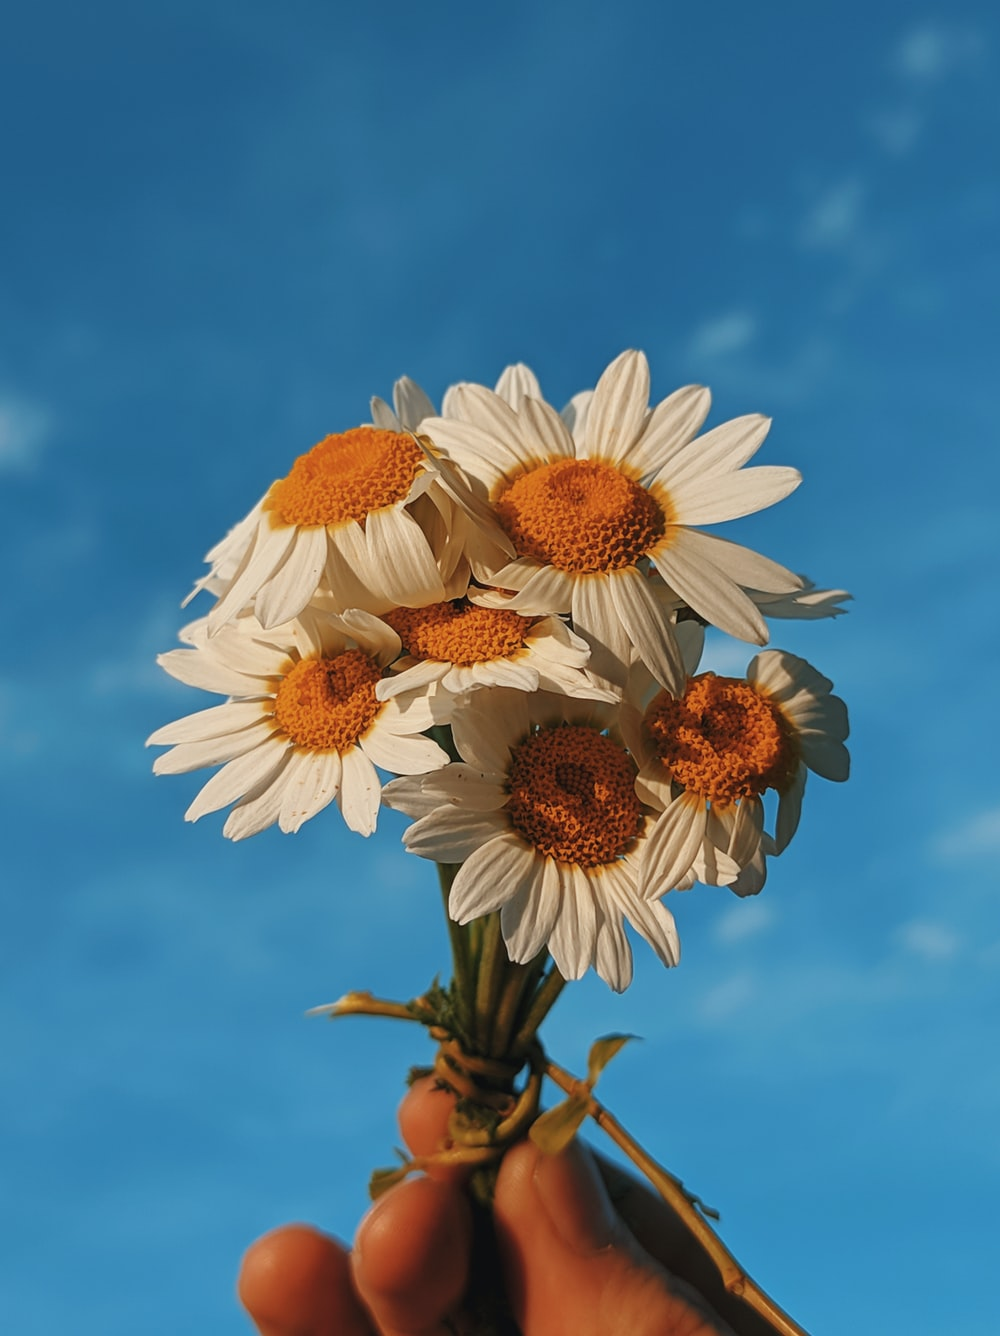 white and brown daisy flowers under blue sky during daytime